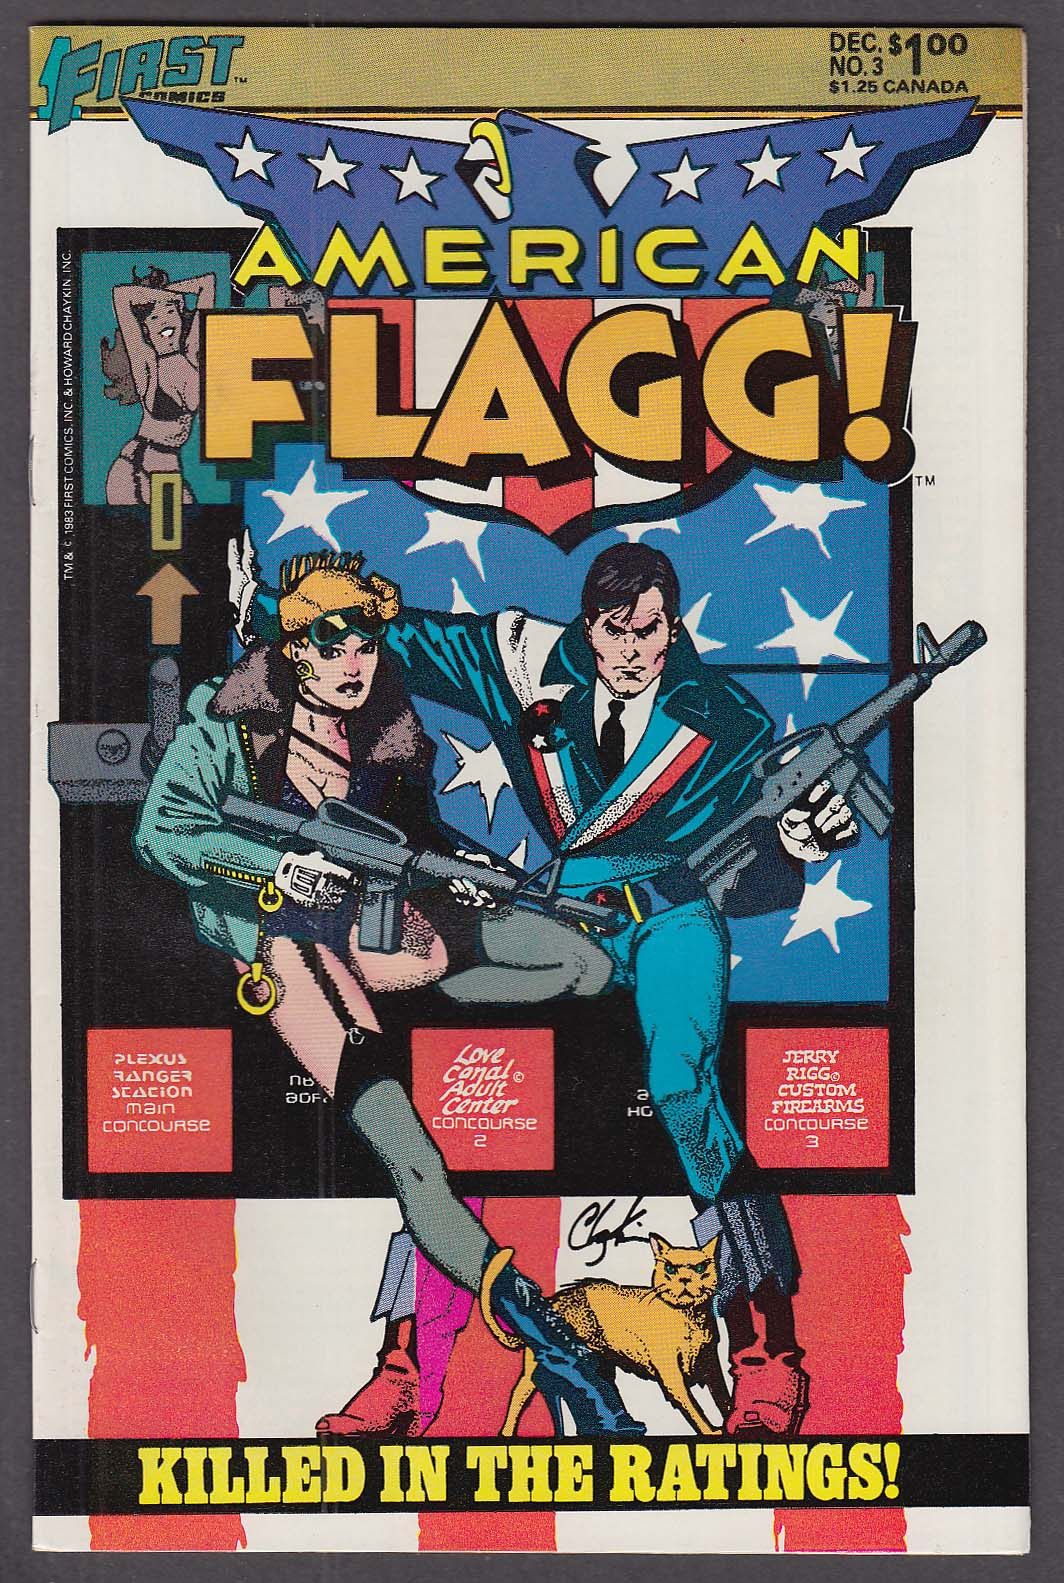 Image for AMERICAN FLAGG! #3 First comic book 12 1983